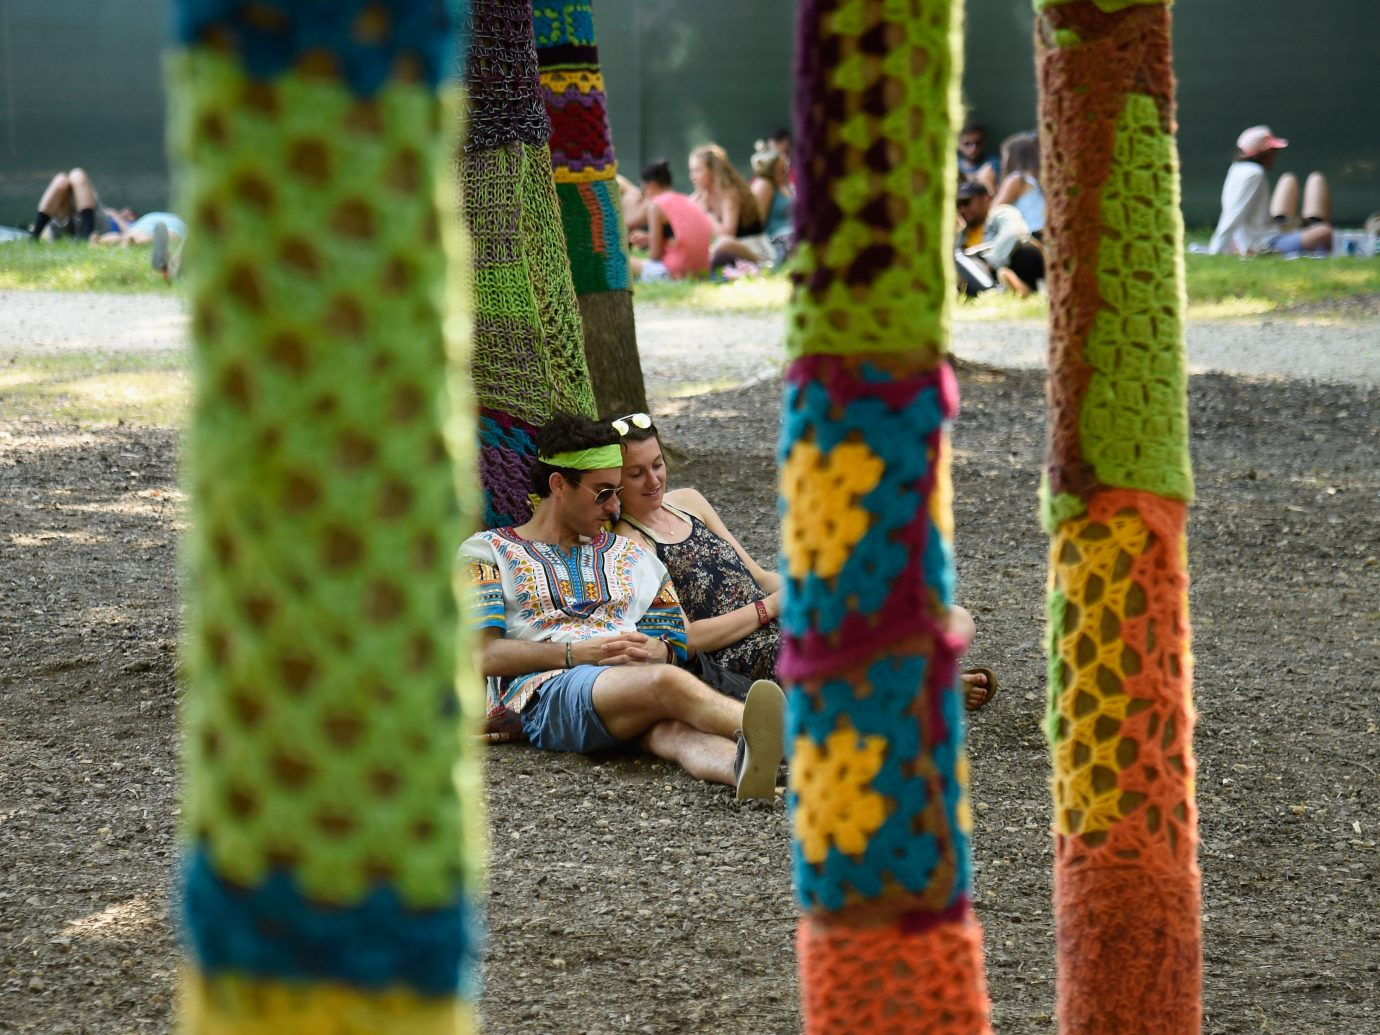 Festivalgoers relax during the 2018 Firefly Music Festival